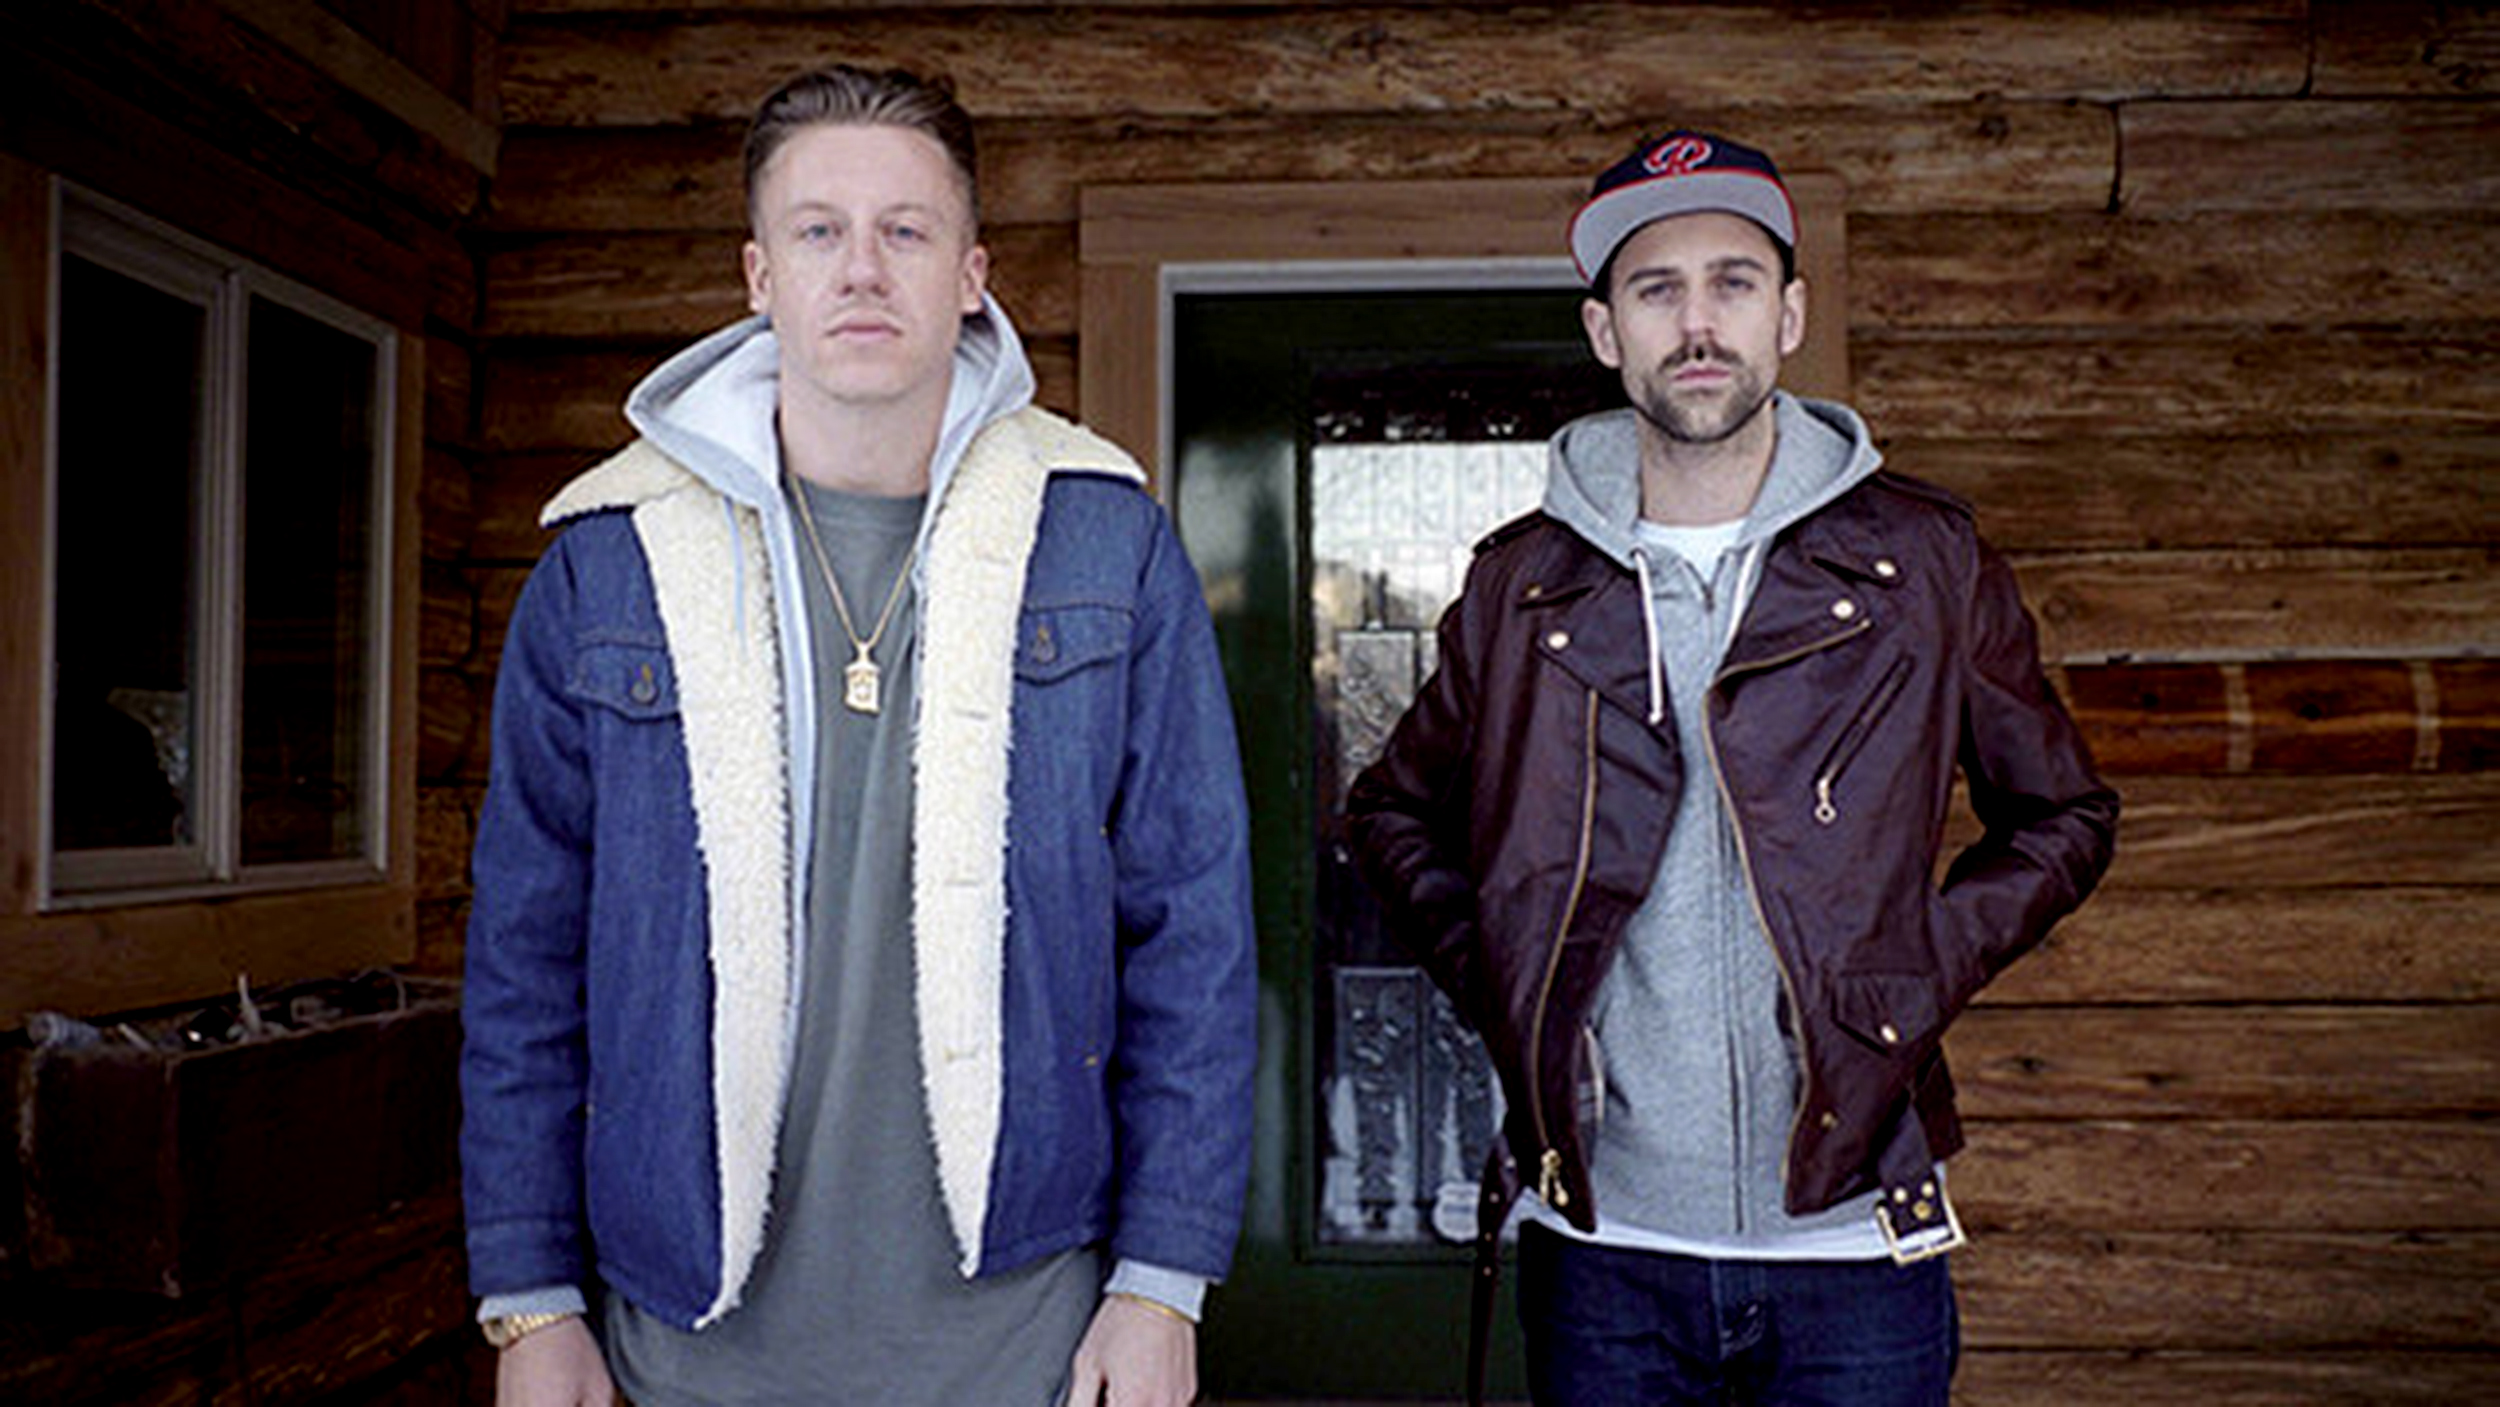 macklemore and ryan lewis today concert what you need to know